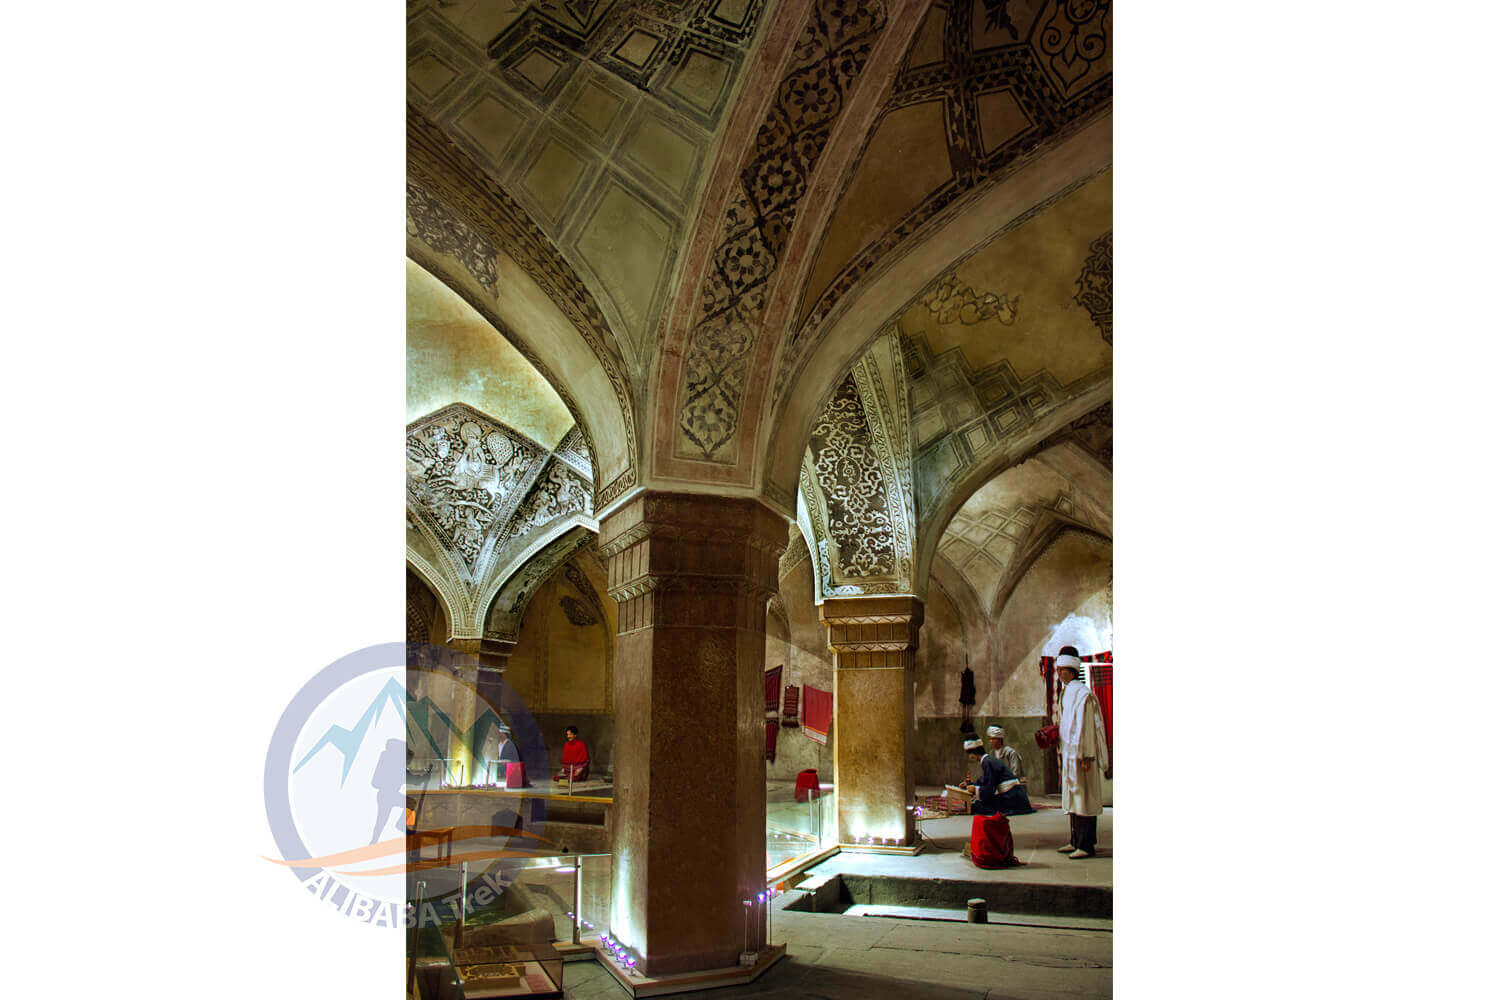 Alibabatrek iran deserts and culture tour Vakil Bath